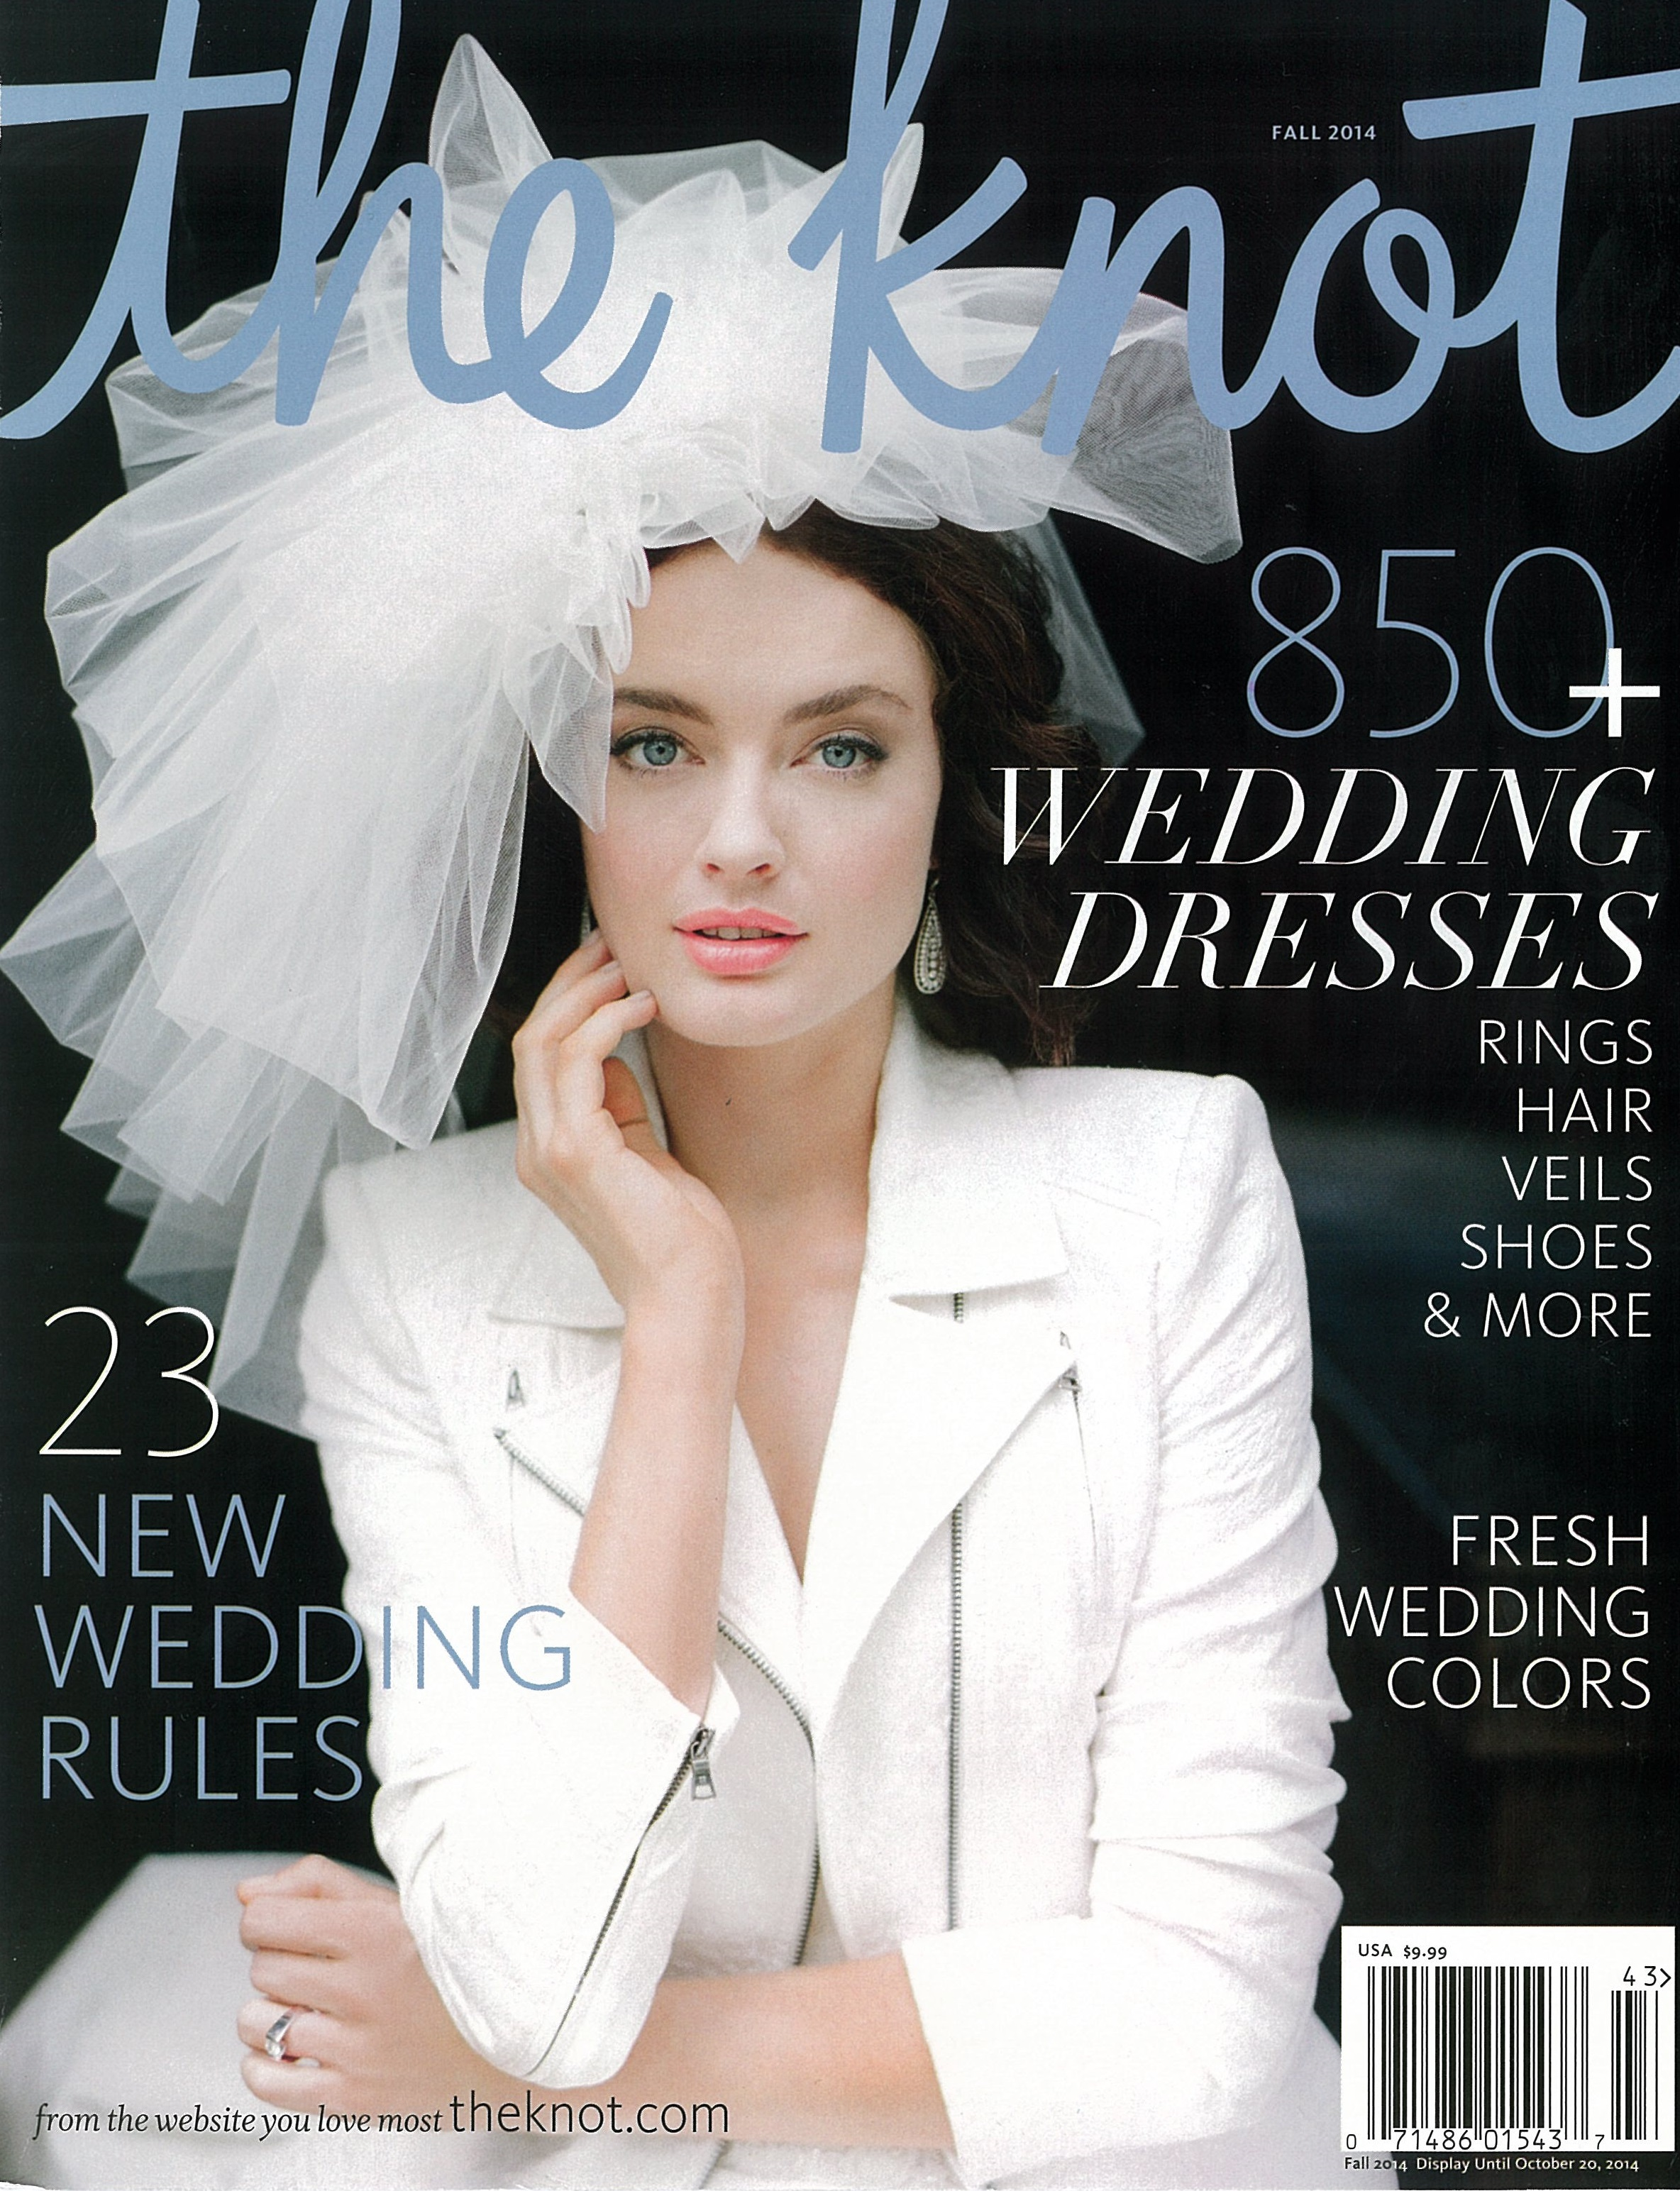 The Knot Fall 2014 Cover.jpg